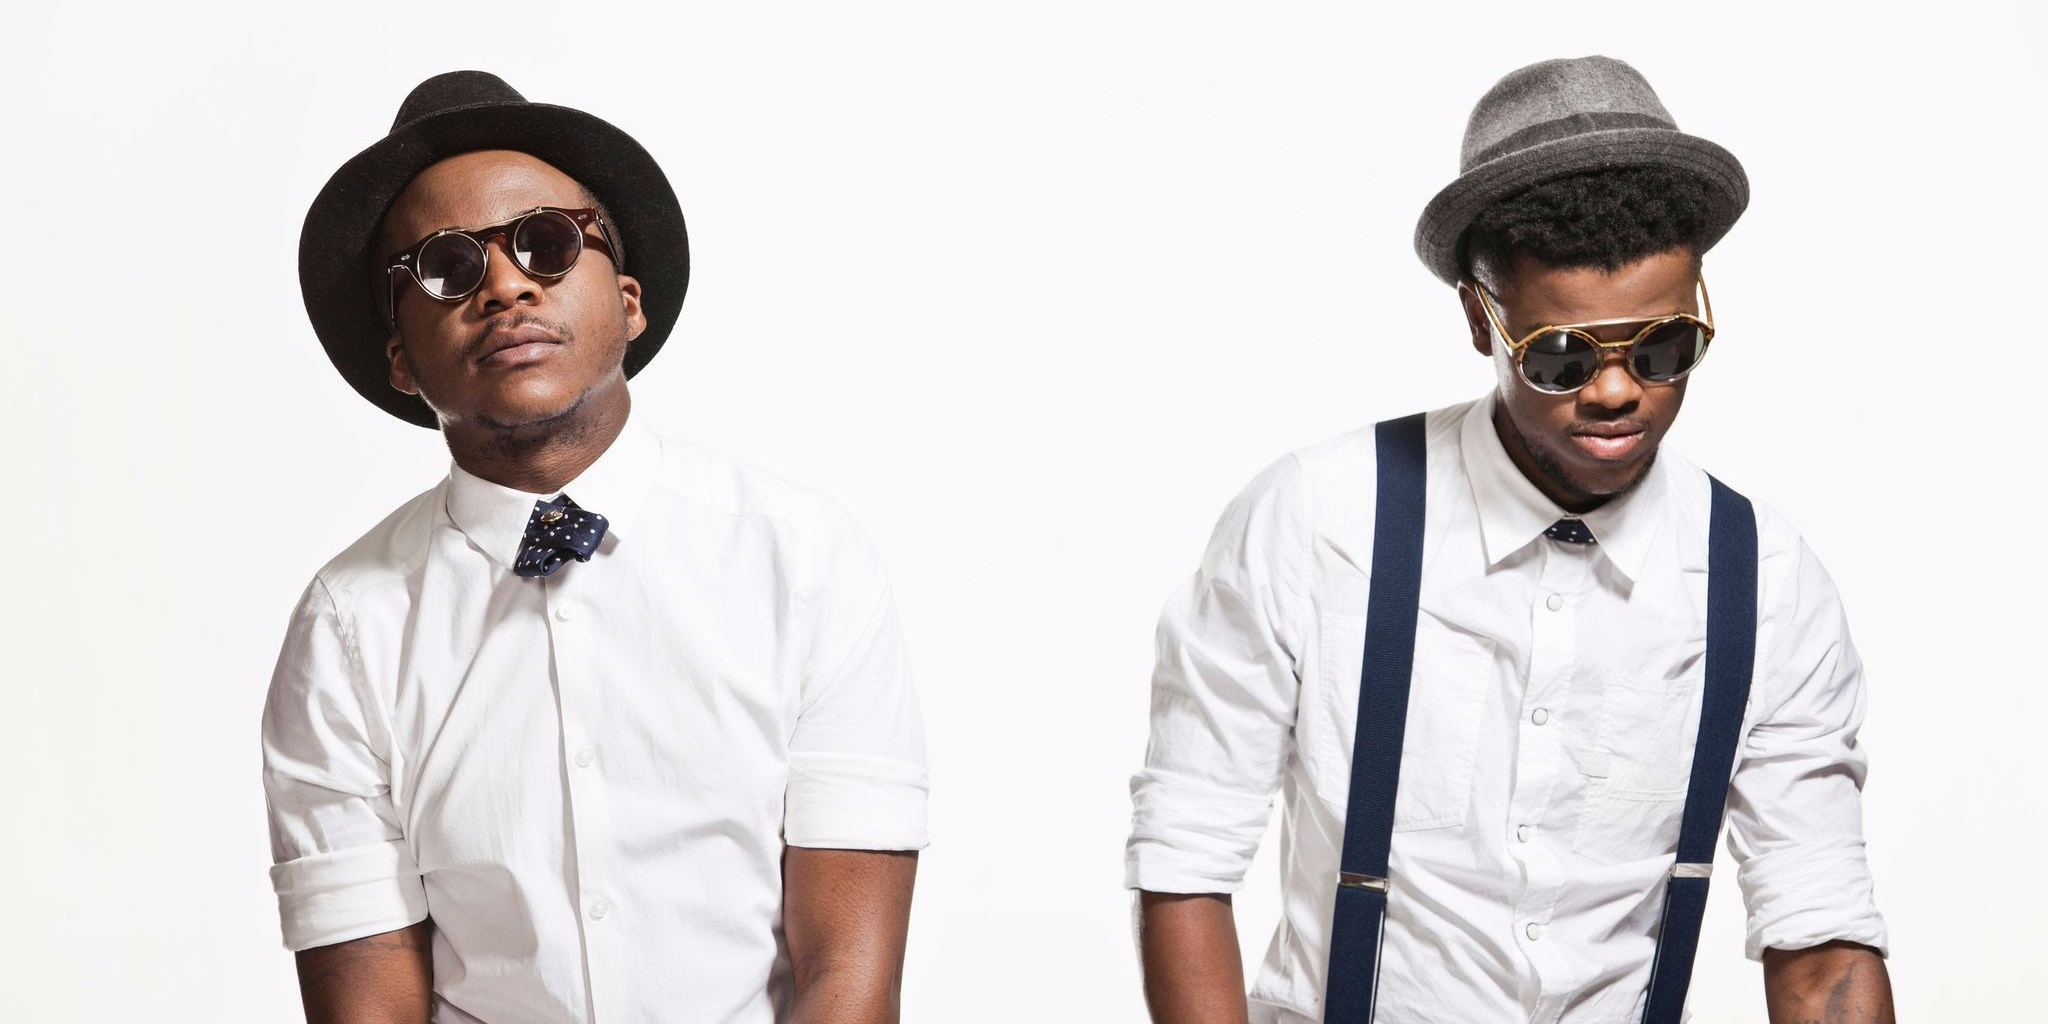 South African house duo Black Motion set for live showcase at Kilo Lounge